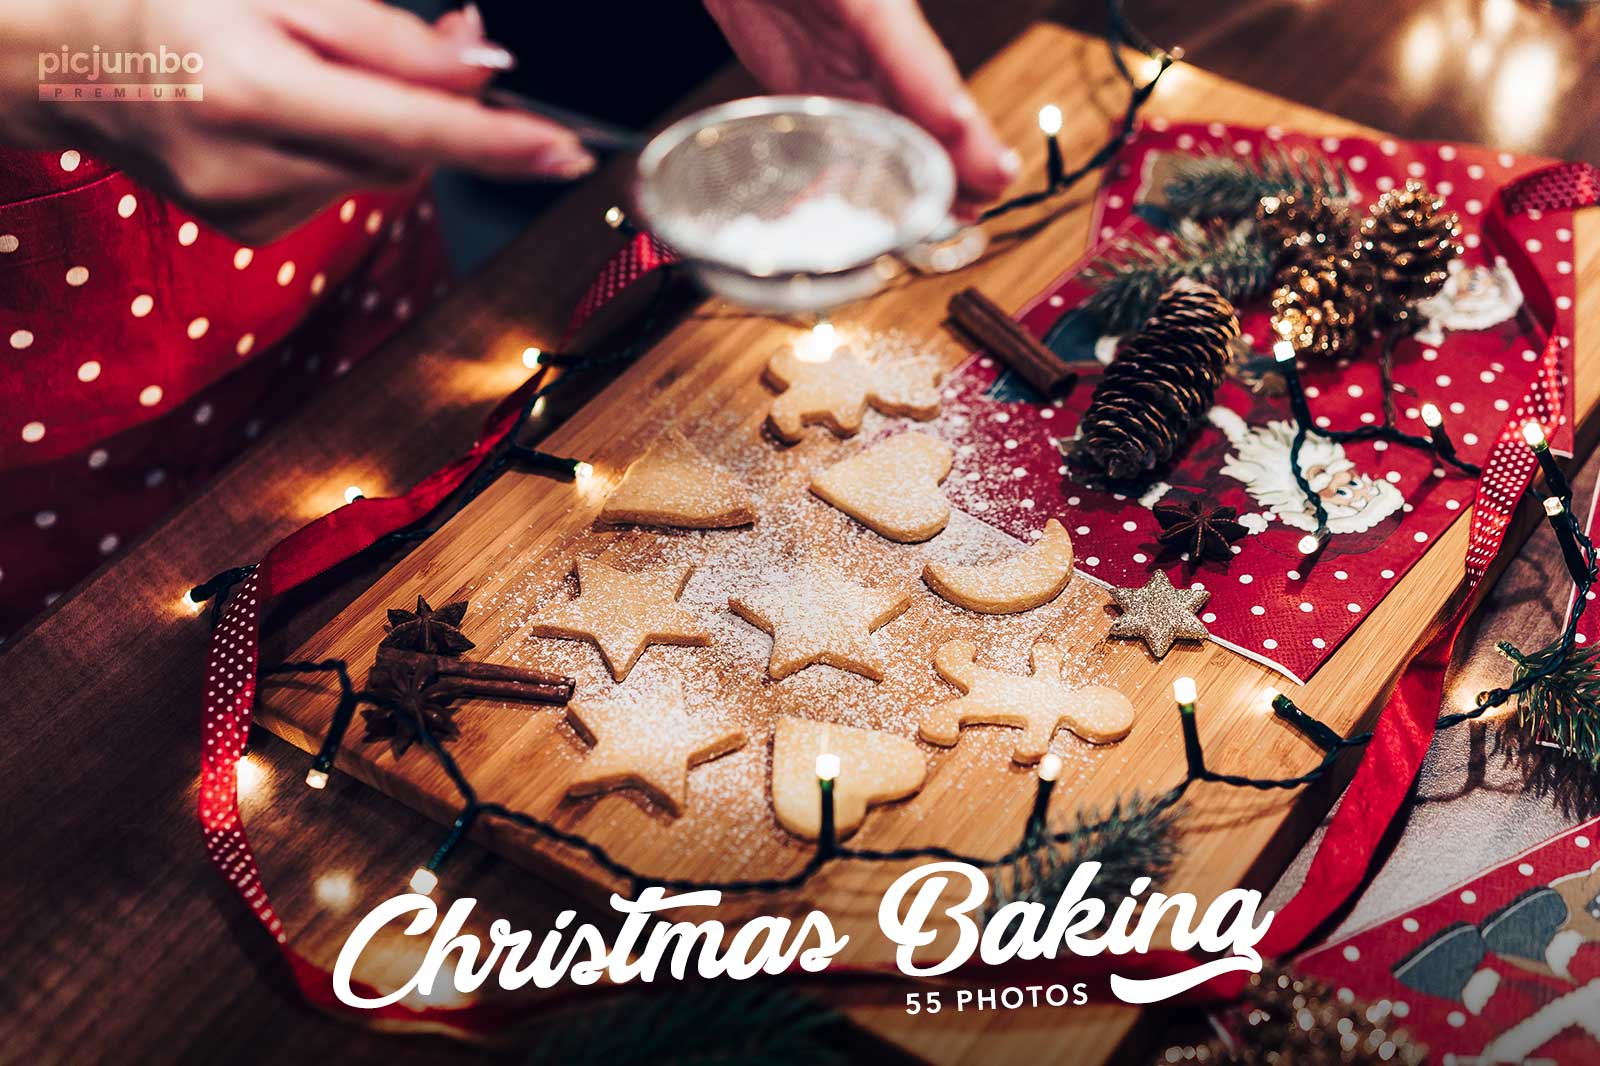 christmas-baking-stock-photo-premium.jpg